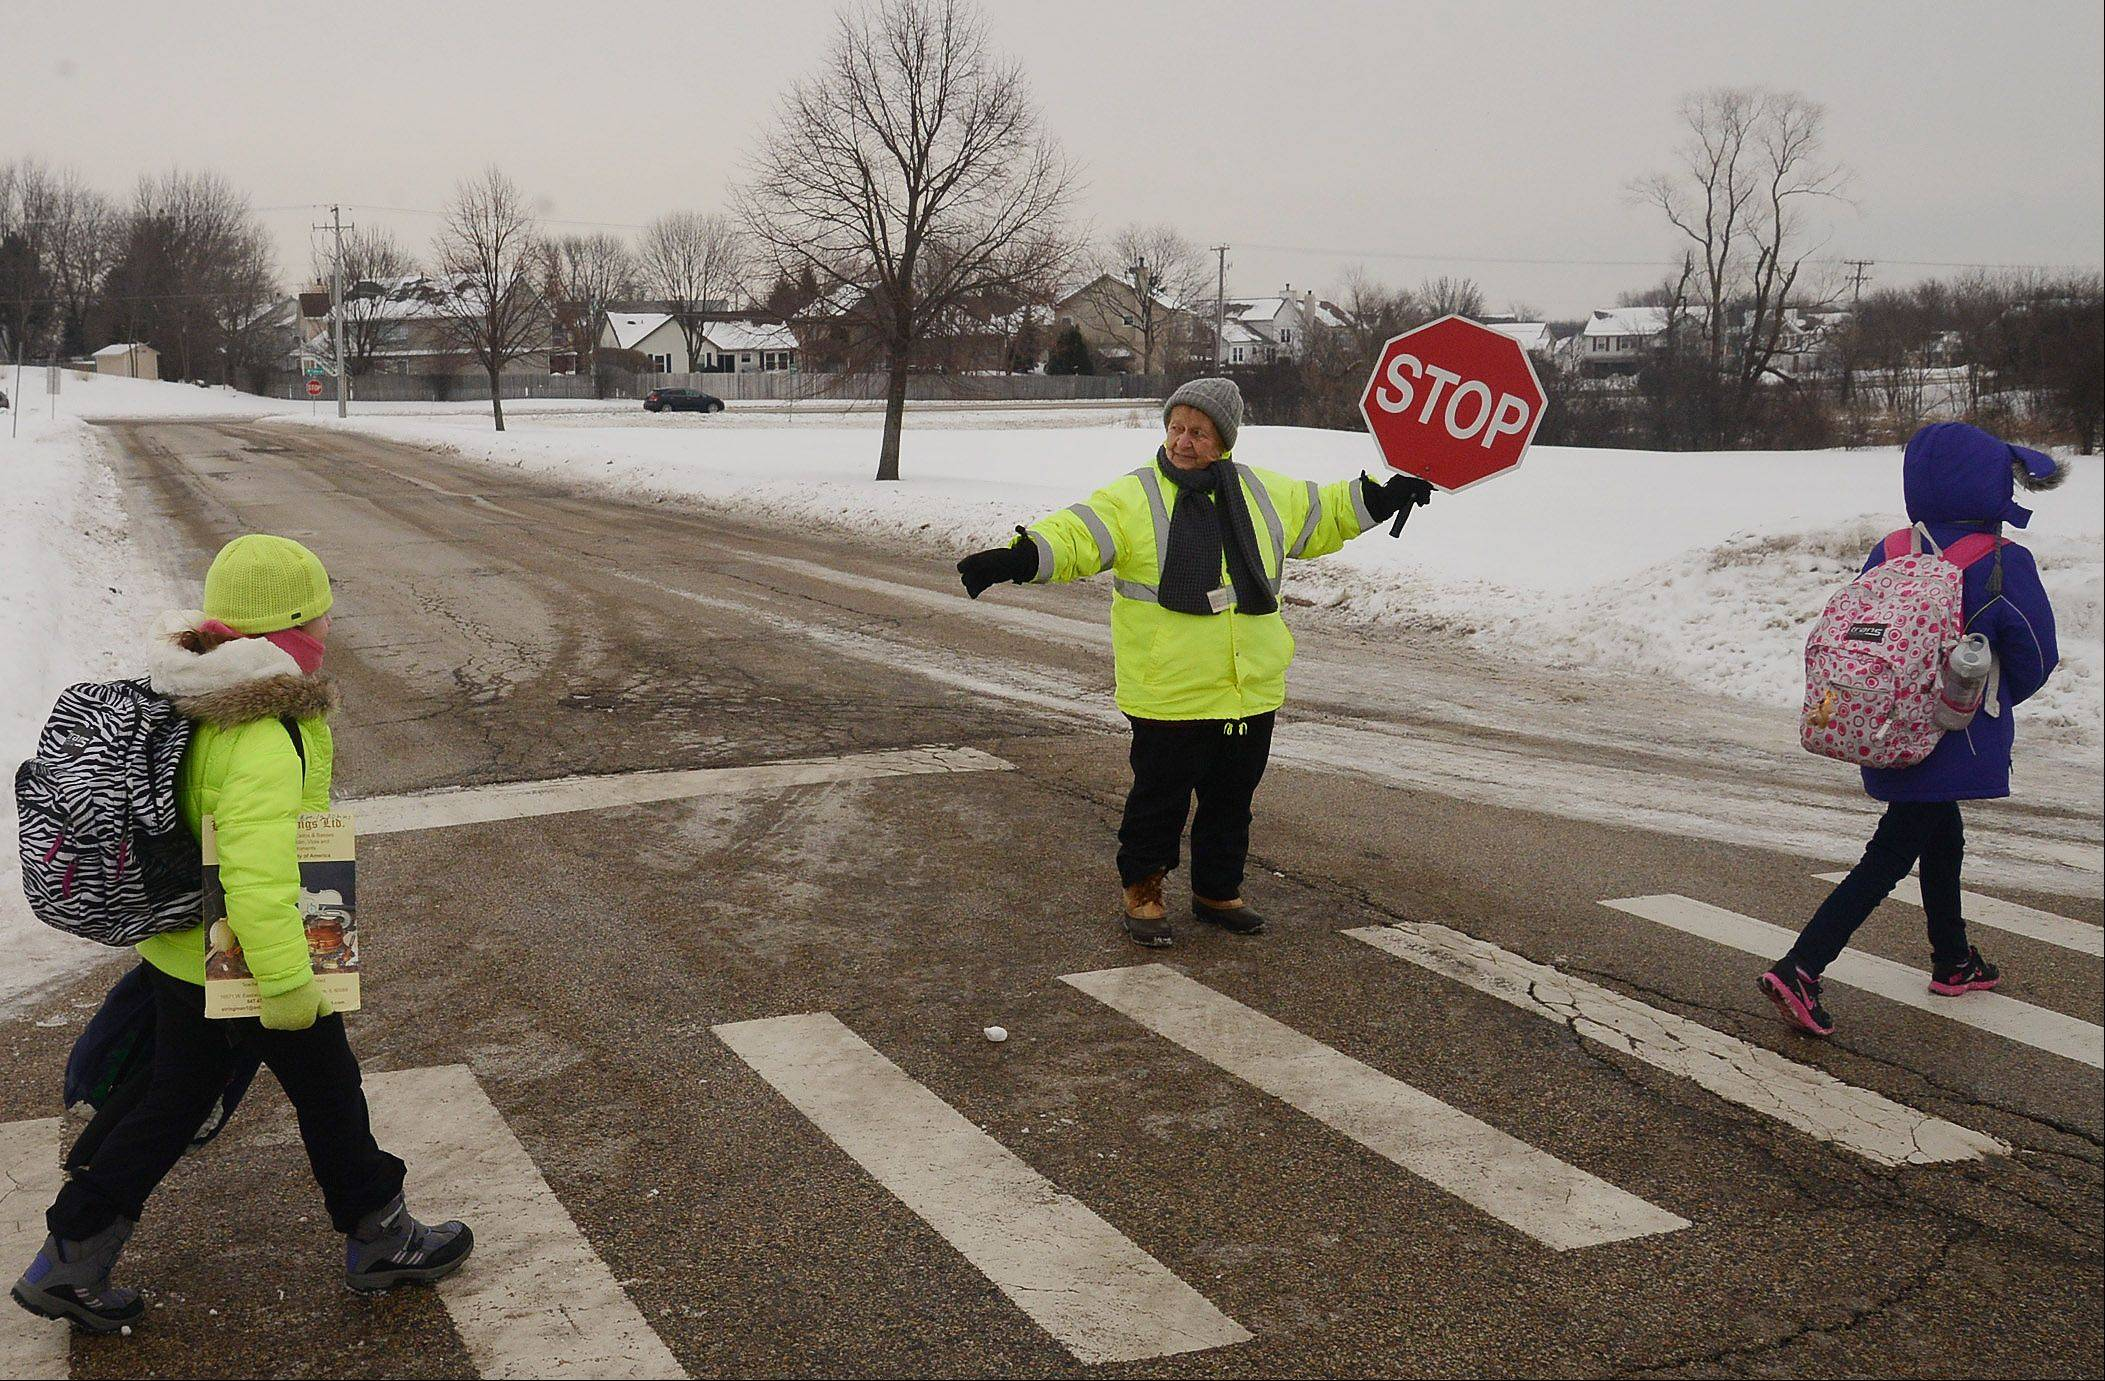 Bob Chwedyk/bchwedyk@dailyherald.comAt her post at Isaac Fox Elementary School, Marie McBride was honored for 40 years as a Lake Zurich crossing guard.